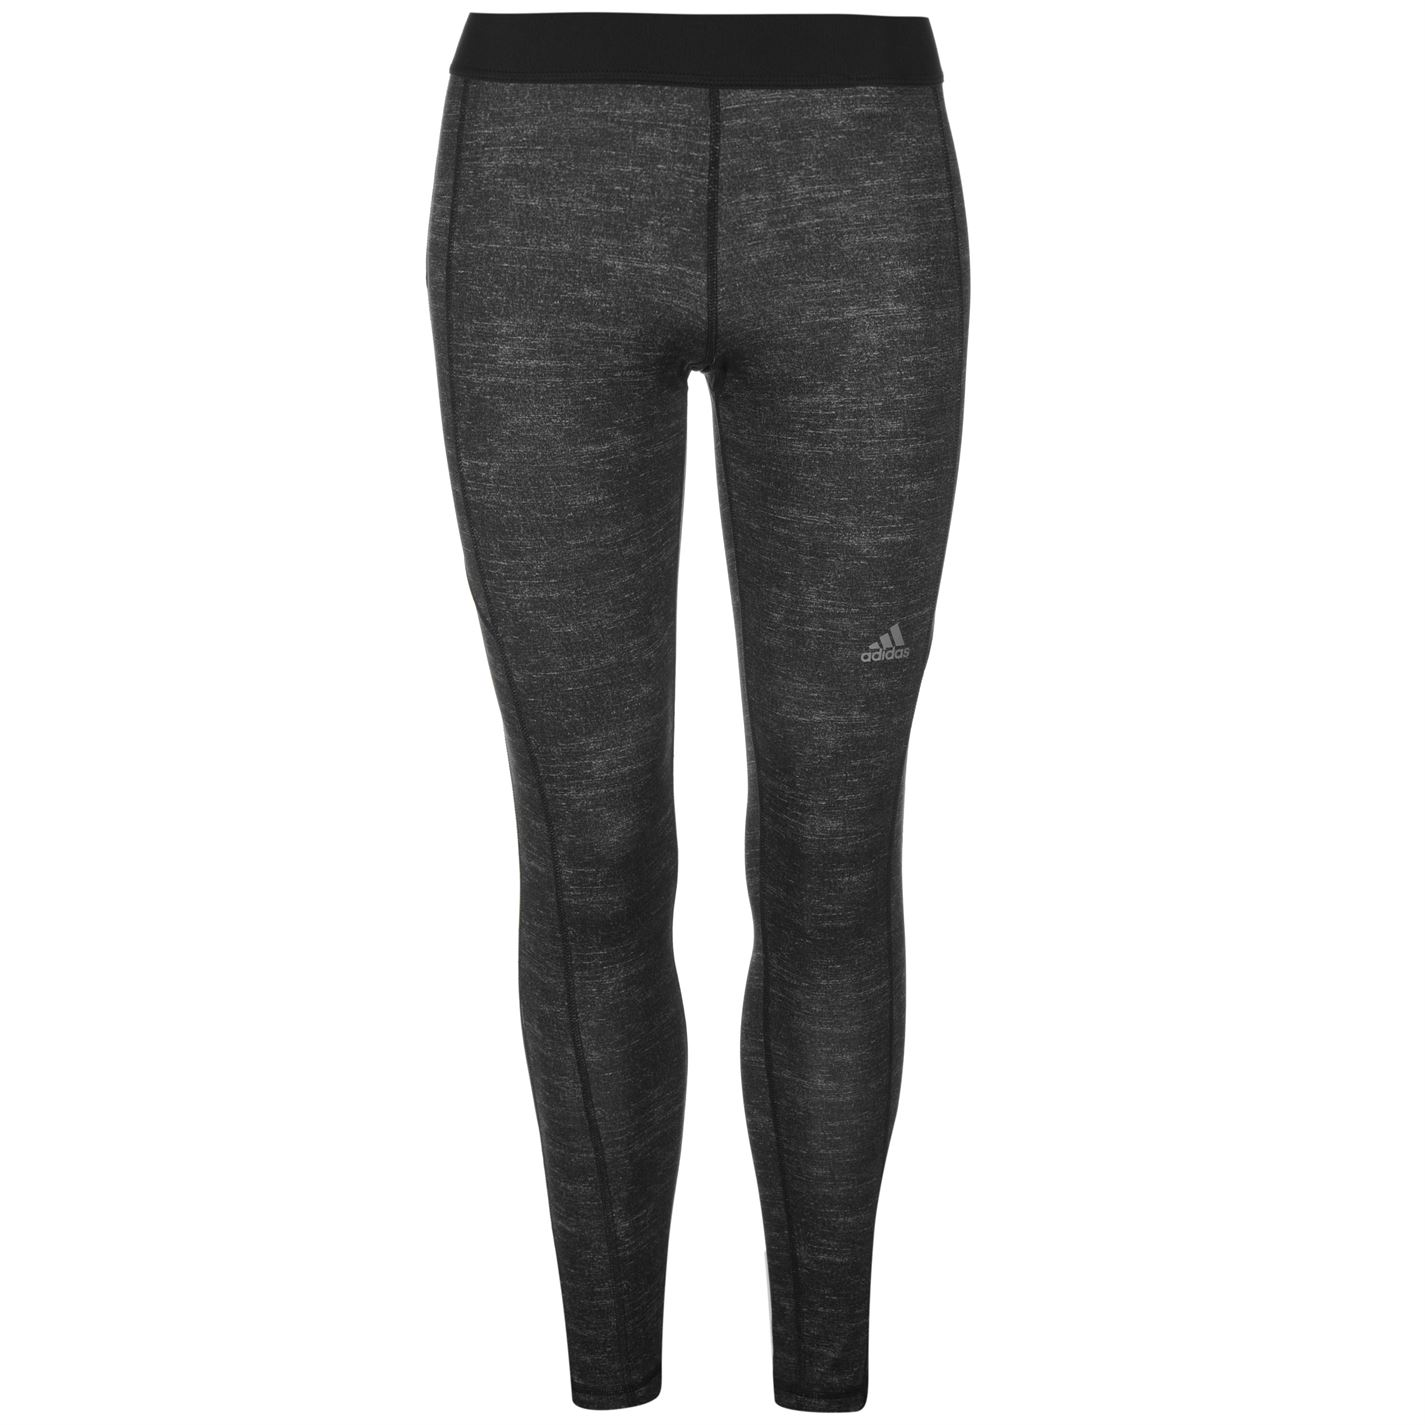 adidas techfit damen tight lang lauftights leggings. Black Bedroom Furniture Sets. Home Design Ideas